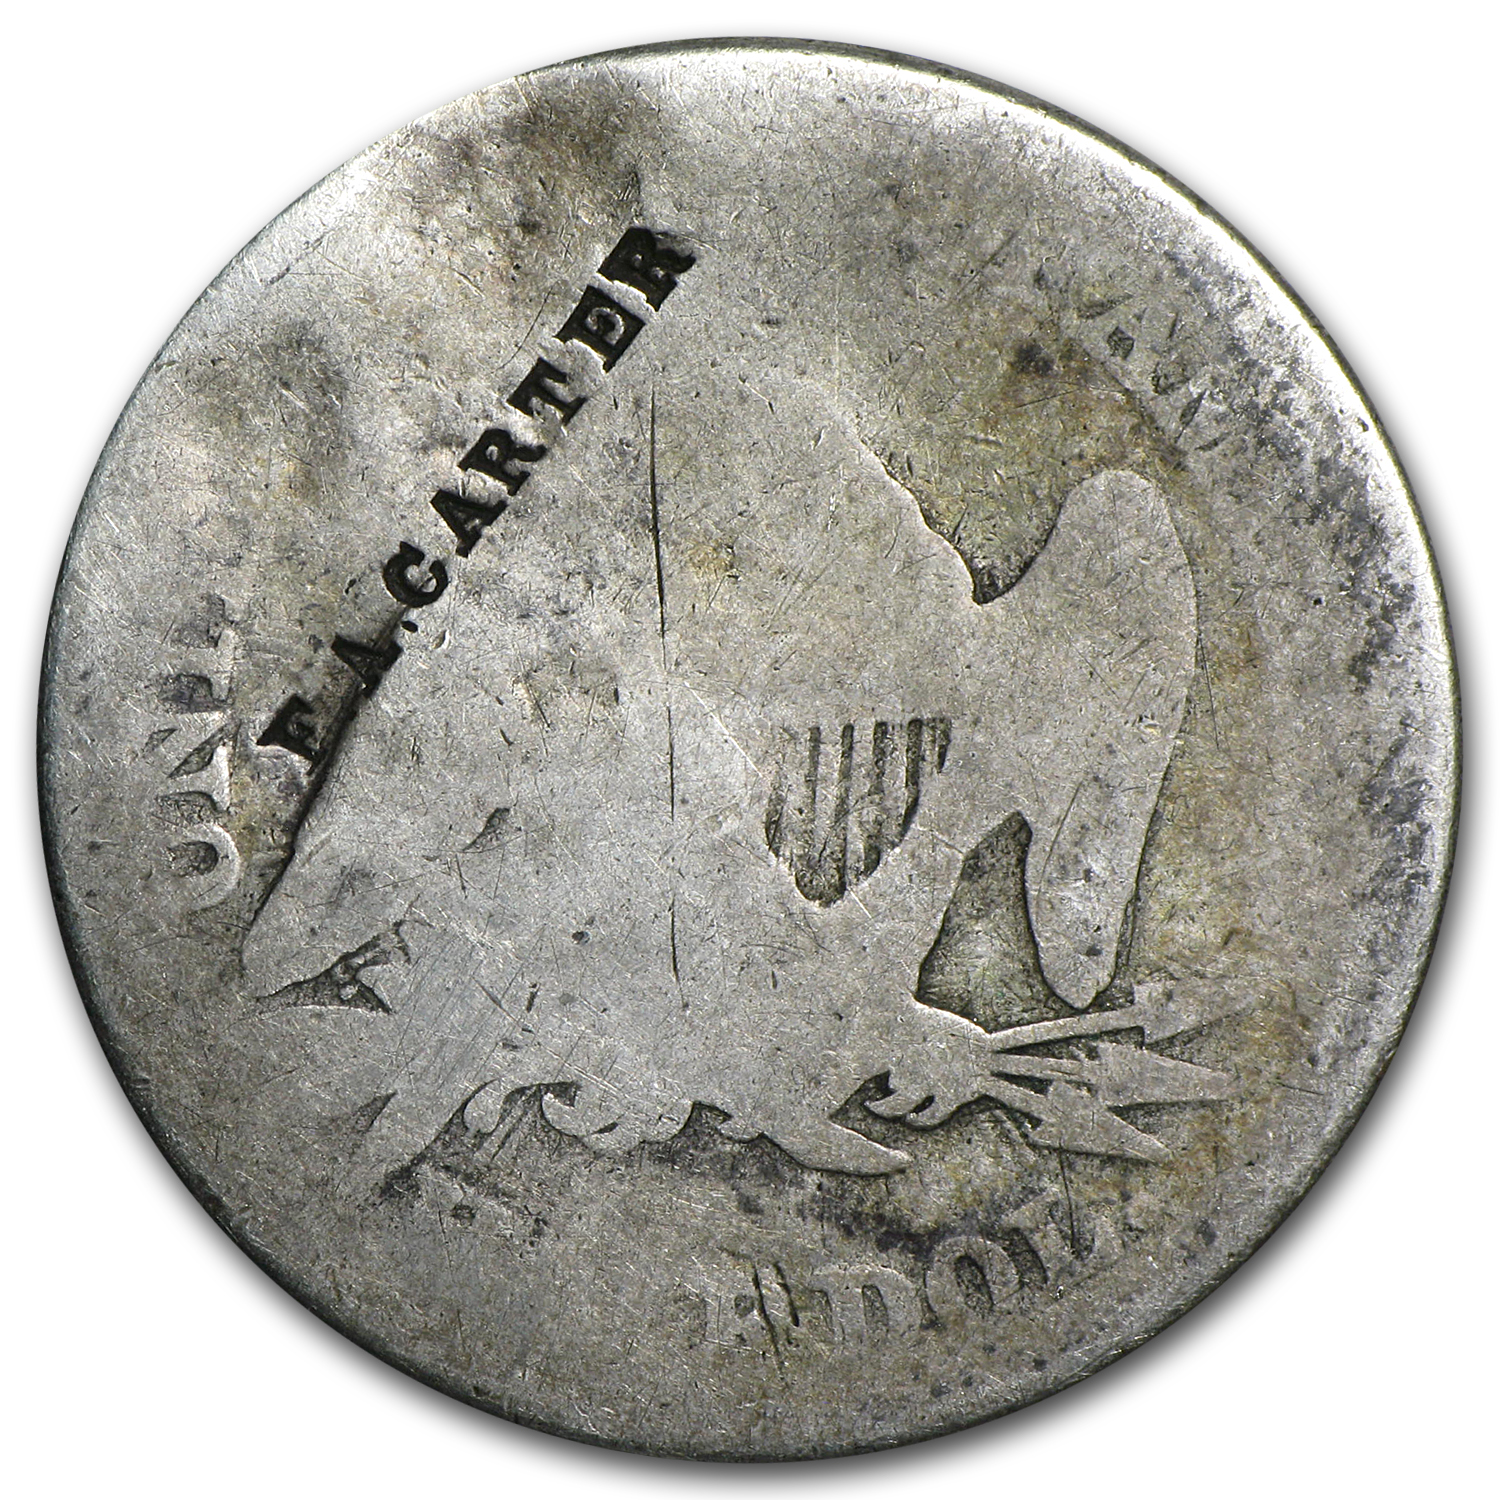 1853 Seated Liberty Half Dollar Counterstamped - F.A. Carter